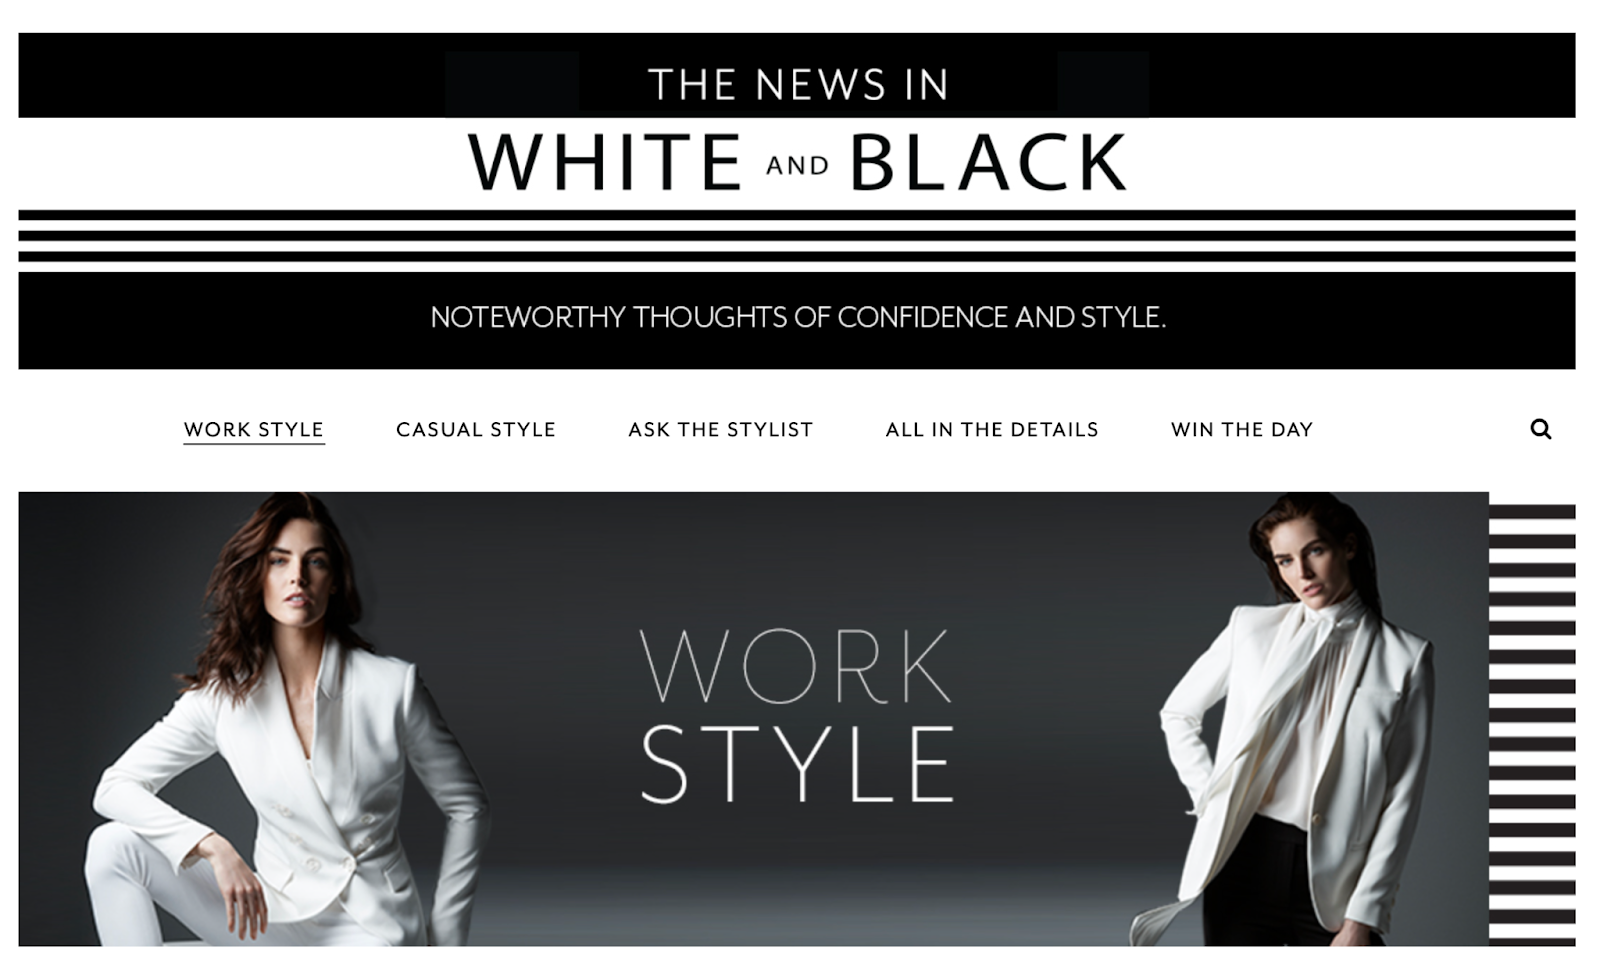 fashion brand has a blog with different categories to cater to different audiences